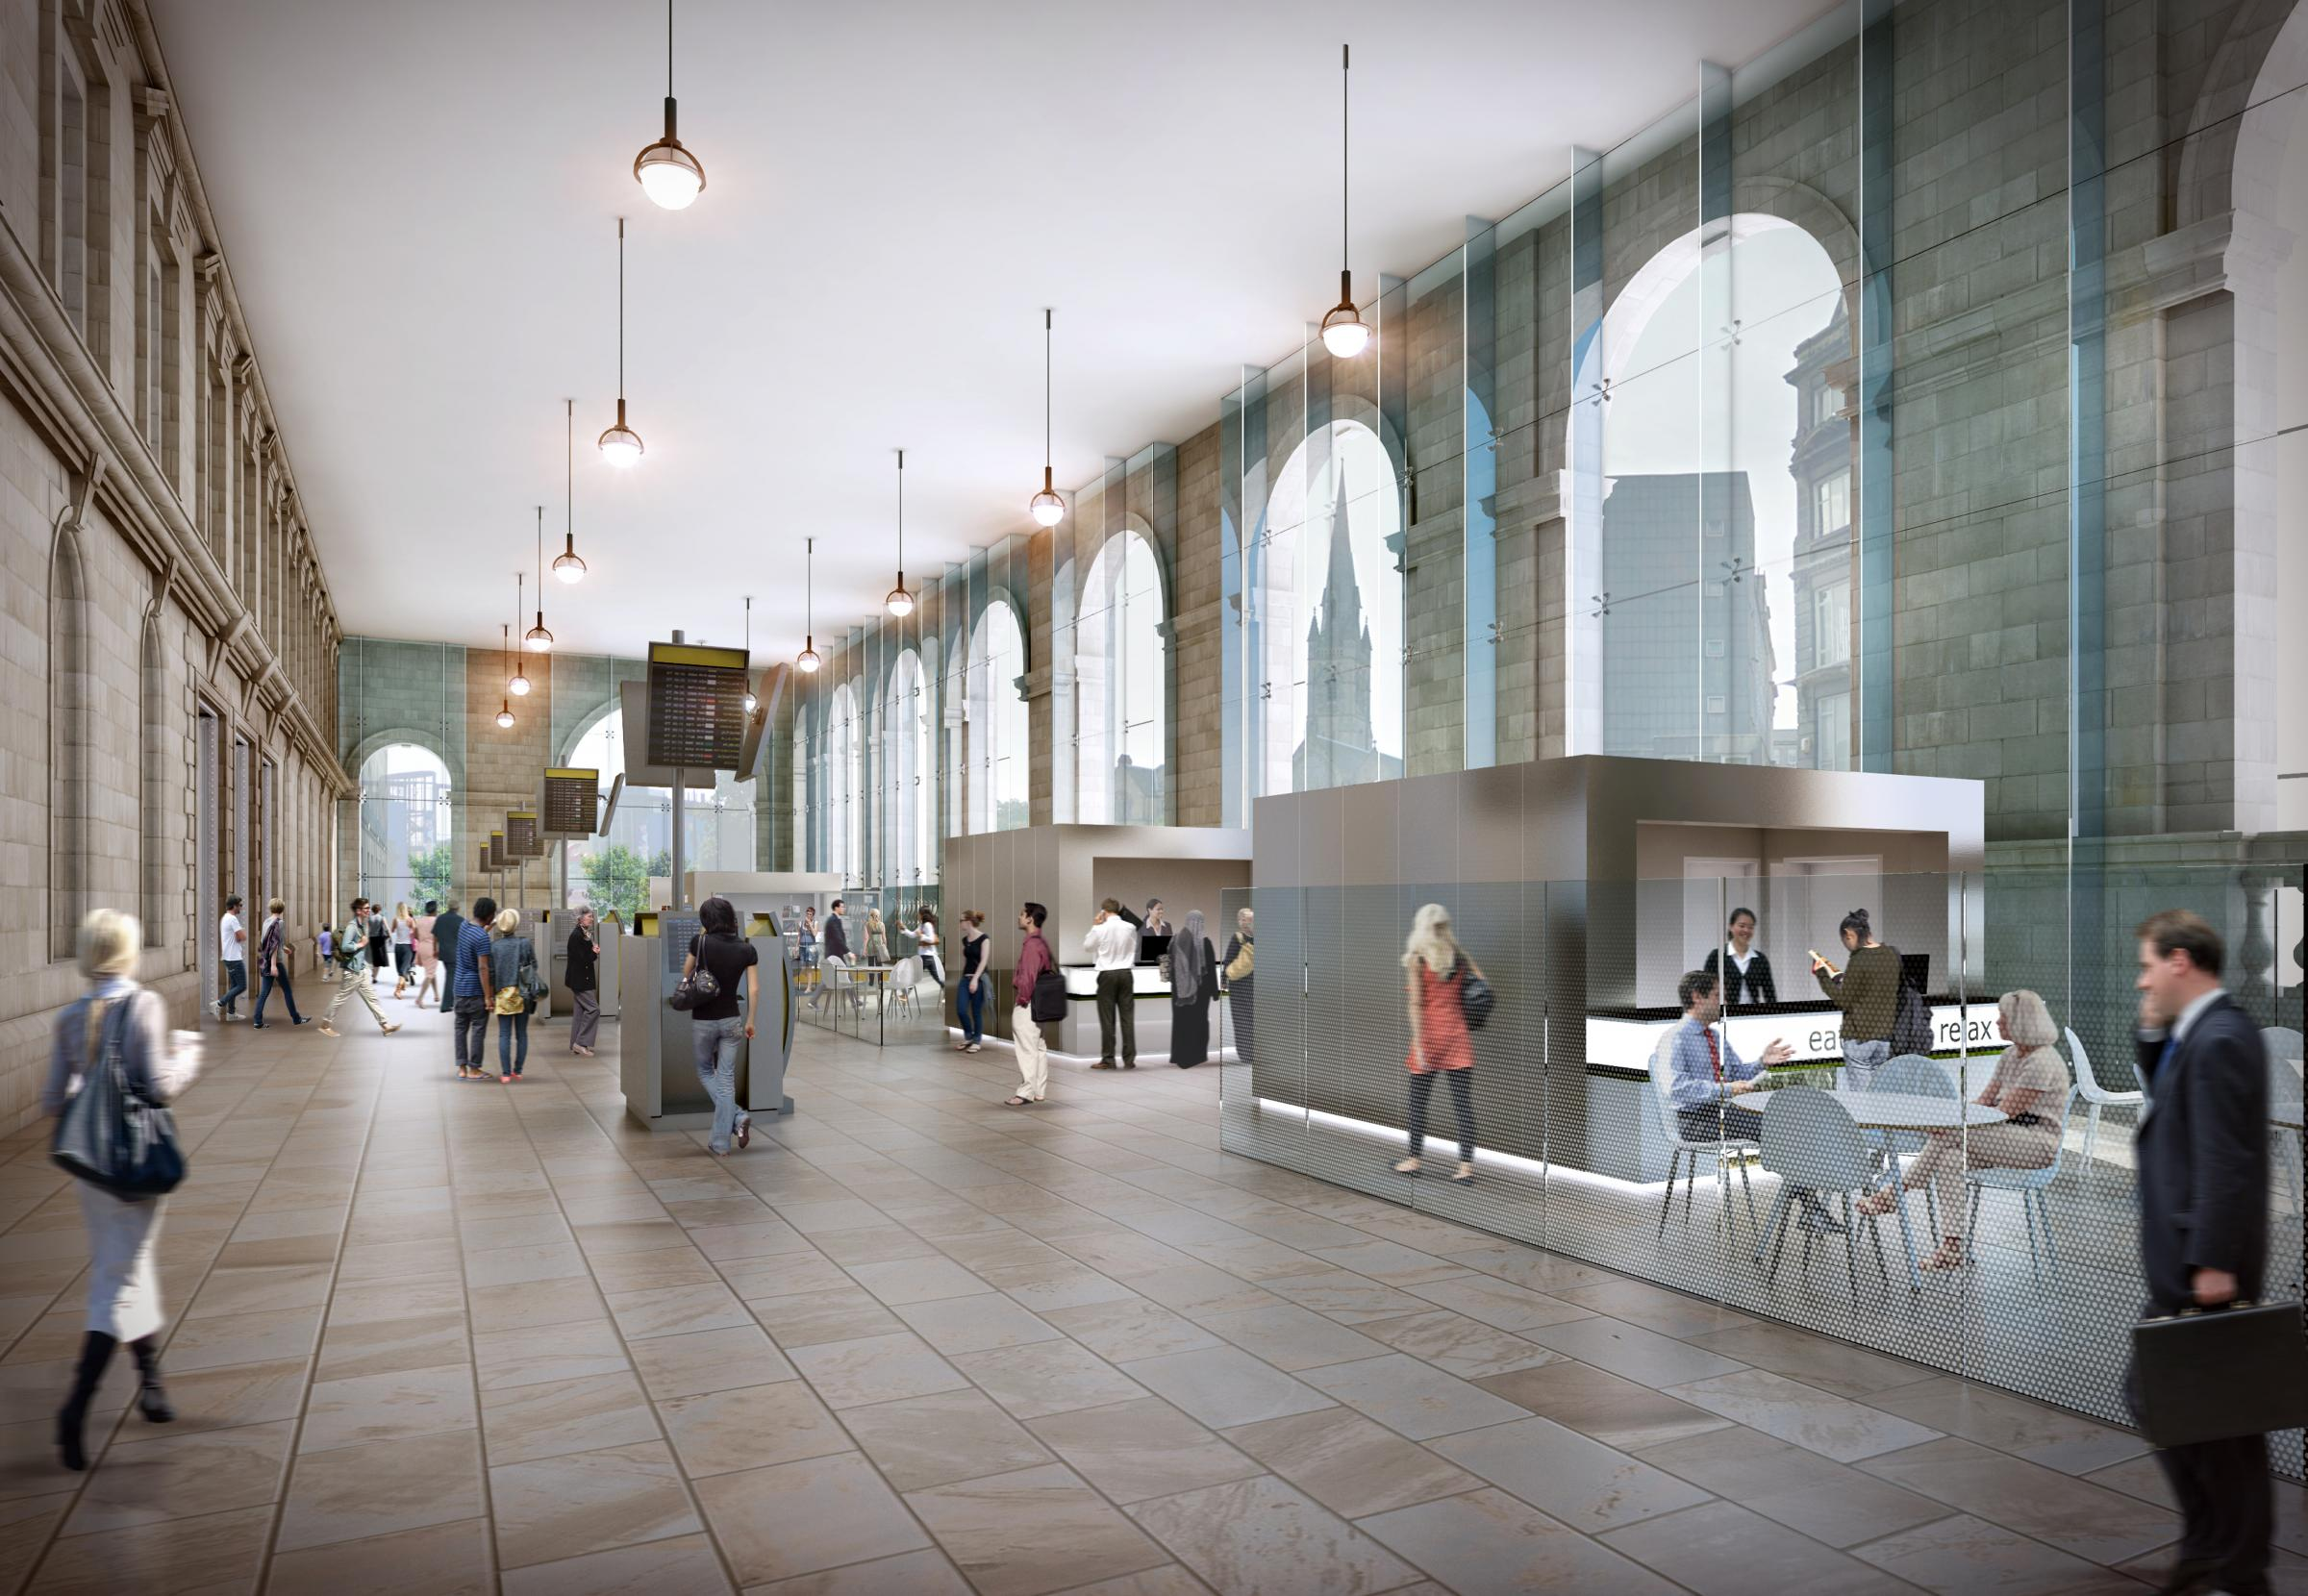 An artist's impression of Newcastle Central station's portico following the £8.6 million redevelopment